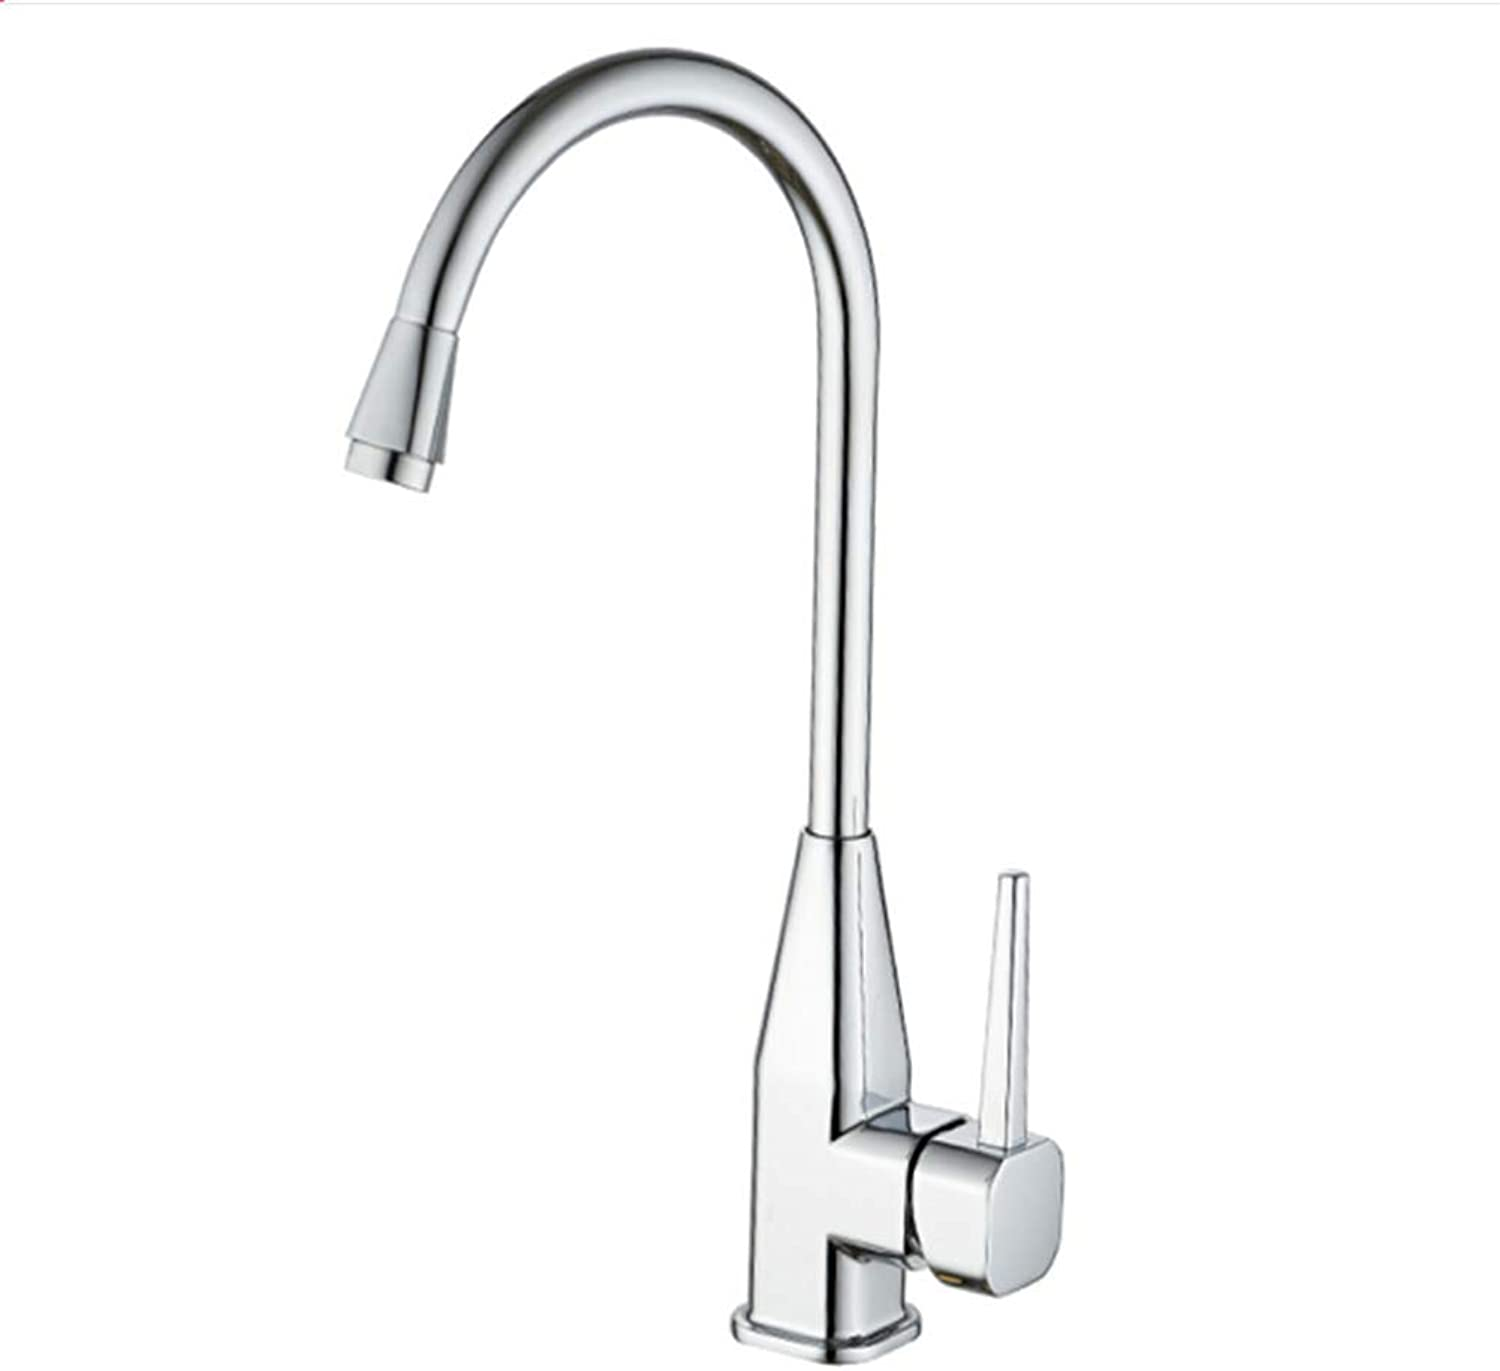 Kitchen Taps Faucet Modern Kitchen Sink Taps Stainless Steelbathroom 360 Degree redating Kitchen Sink Cold and Hot Faucet